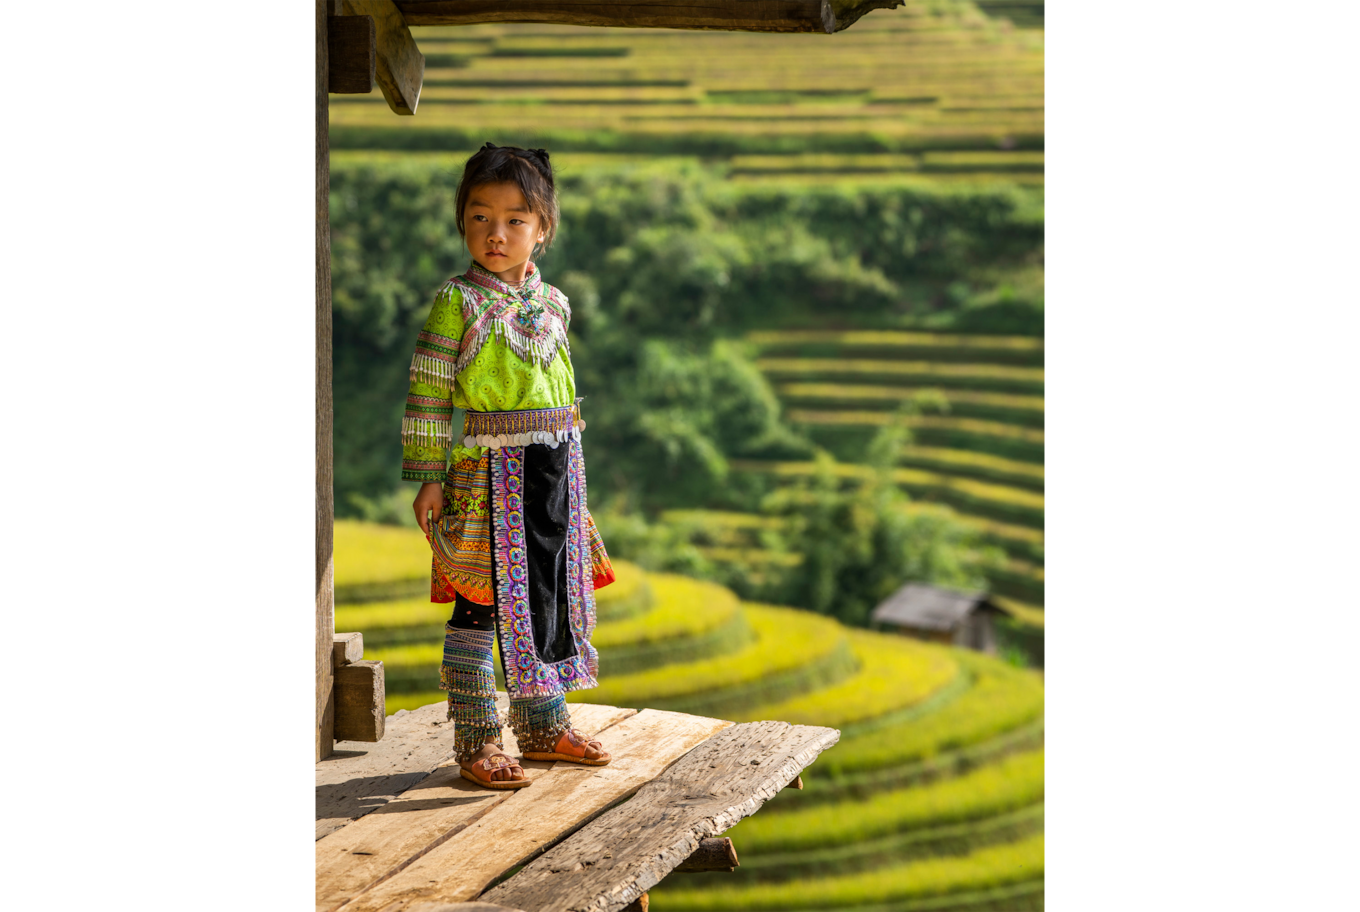 dennis schmelz sony alpha 7m3 little girl in traditional outfit stands in front of ricefields